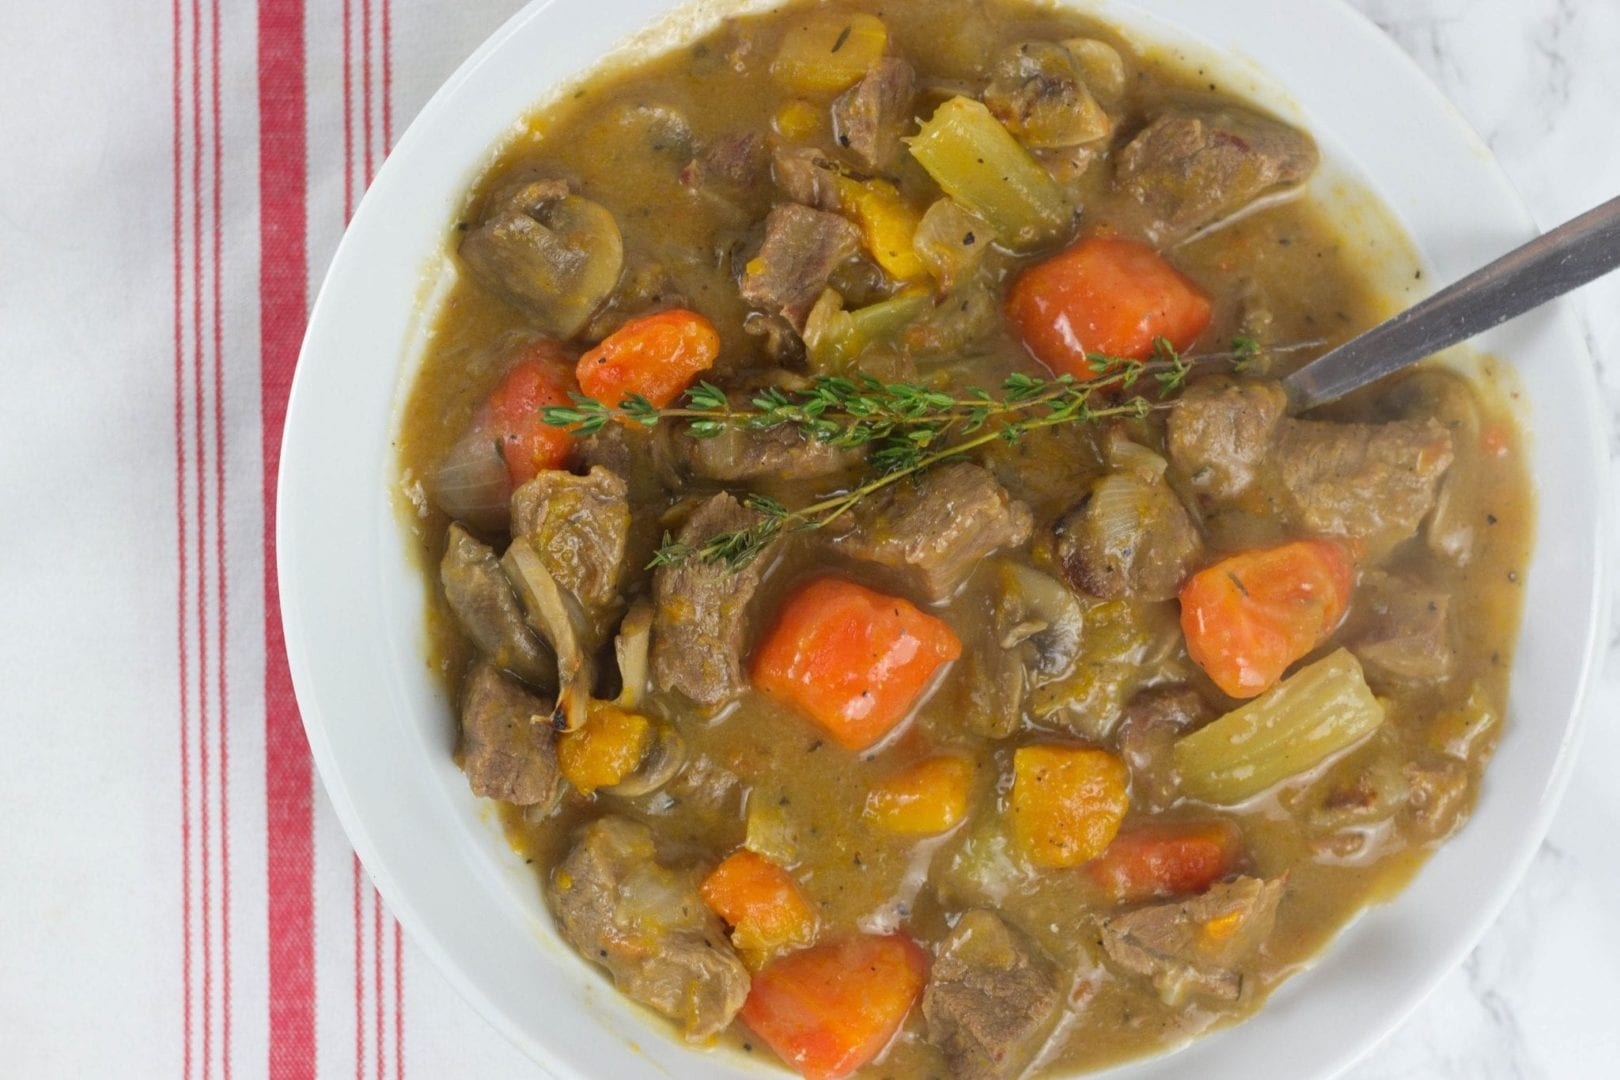 Baby beef stew - one pot beef stew recipe for the whole family